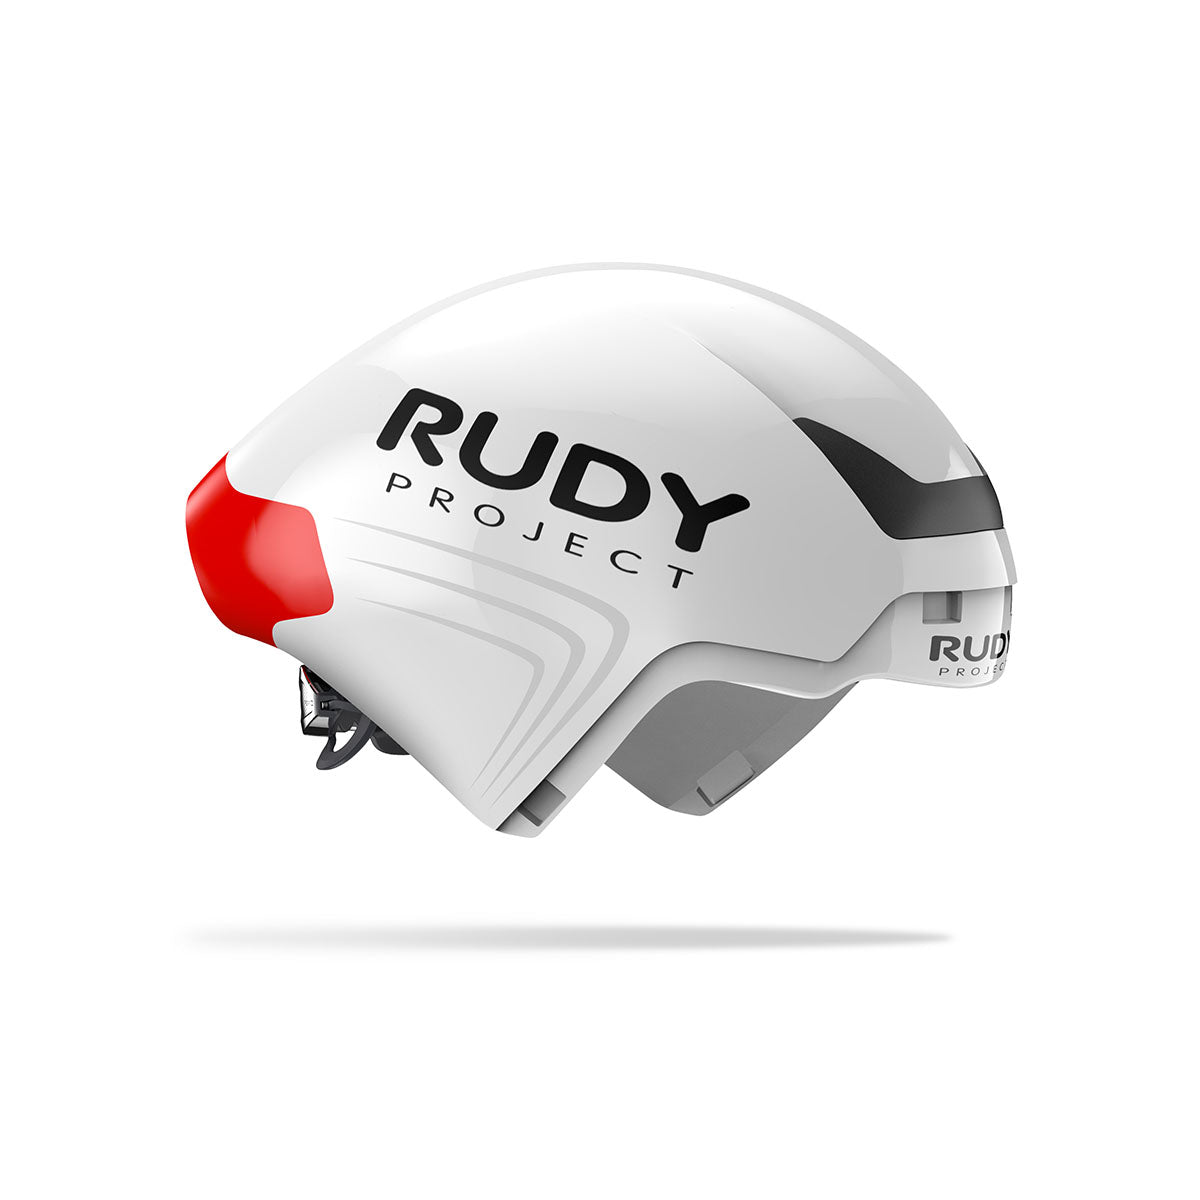 Rudy Project - The Wing - color: White - photo angle: Side Without Visor Variant Hover Image